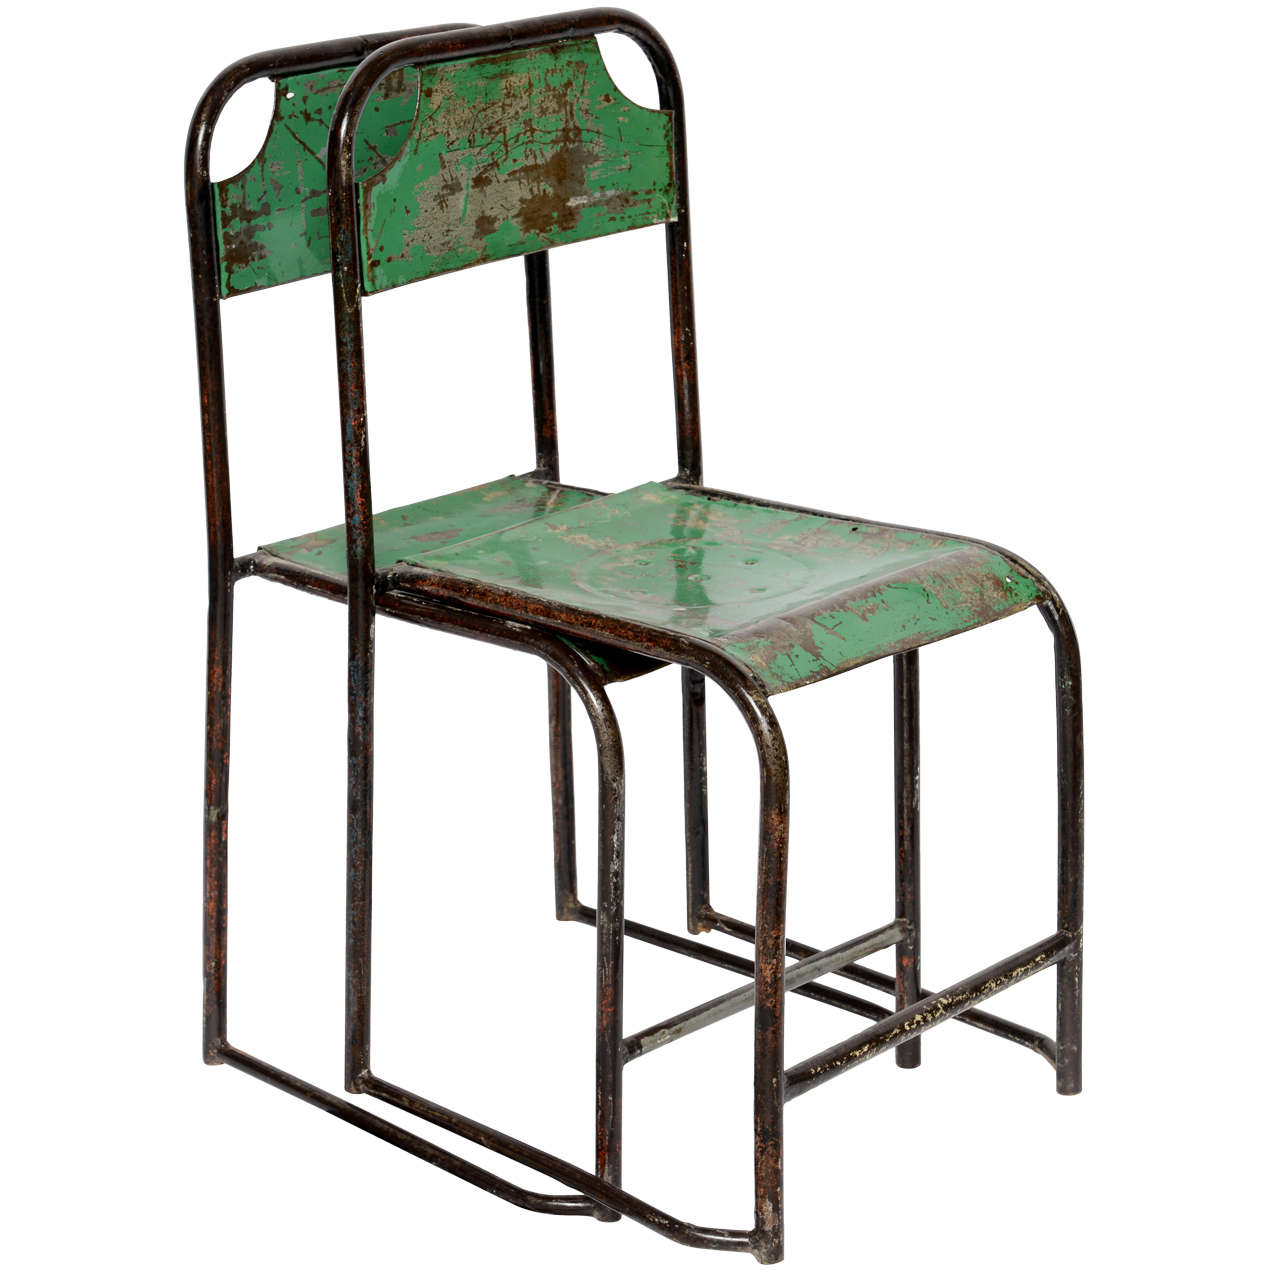 Prvintage metal chairs from Java at 1stdibs : X from www.1stdibs.com size 1280 x 1280 jpeg 105kB